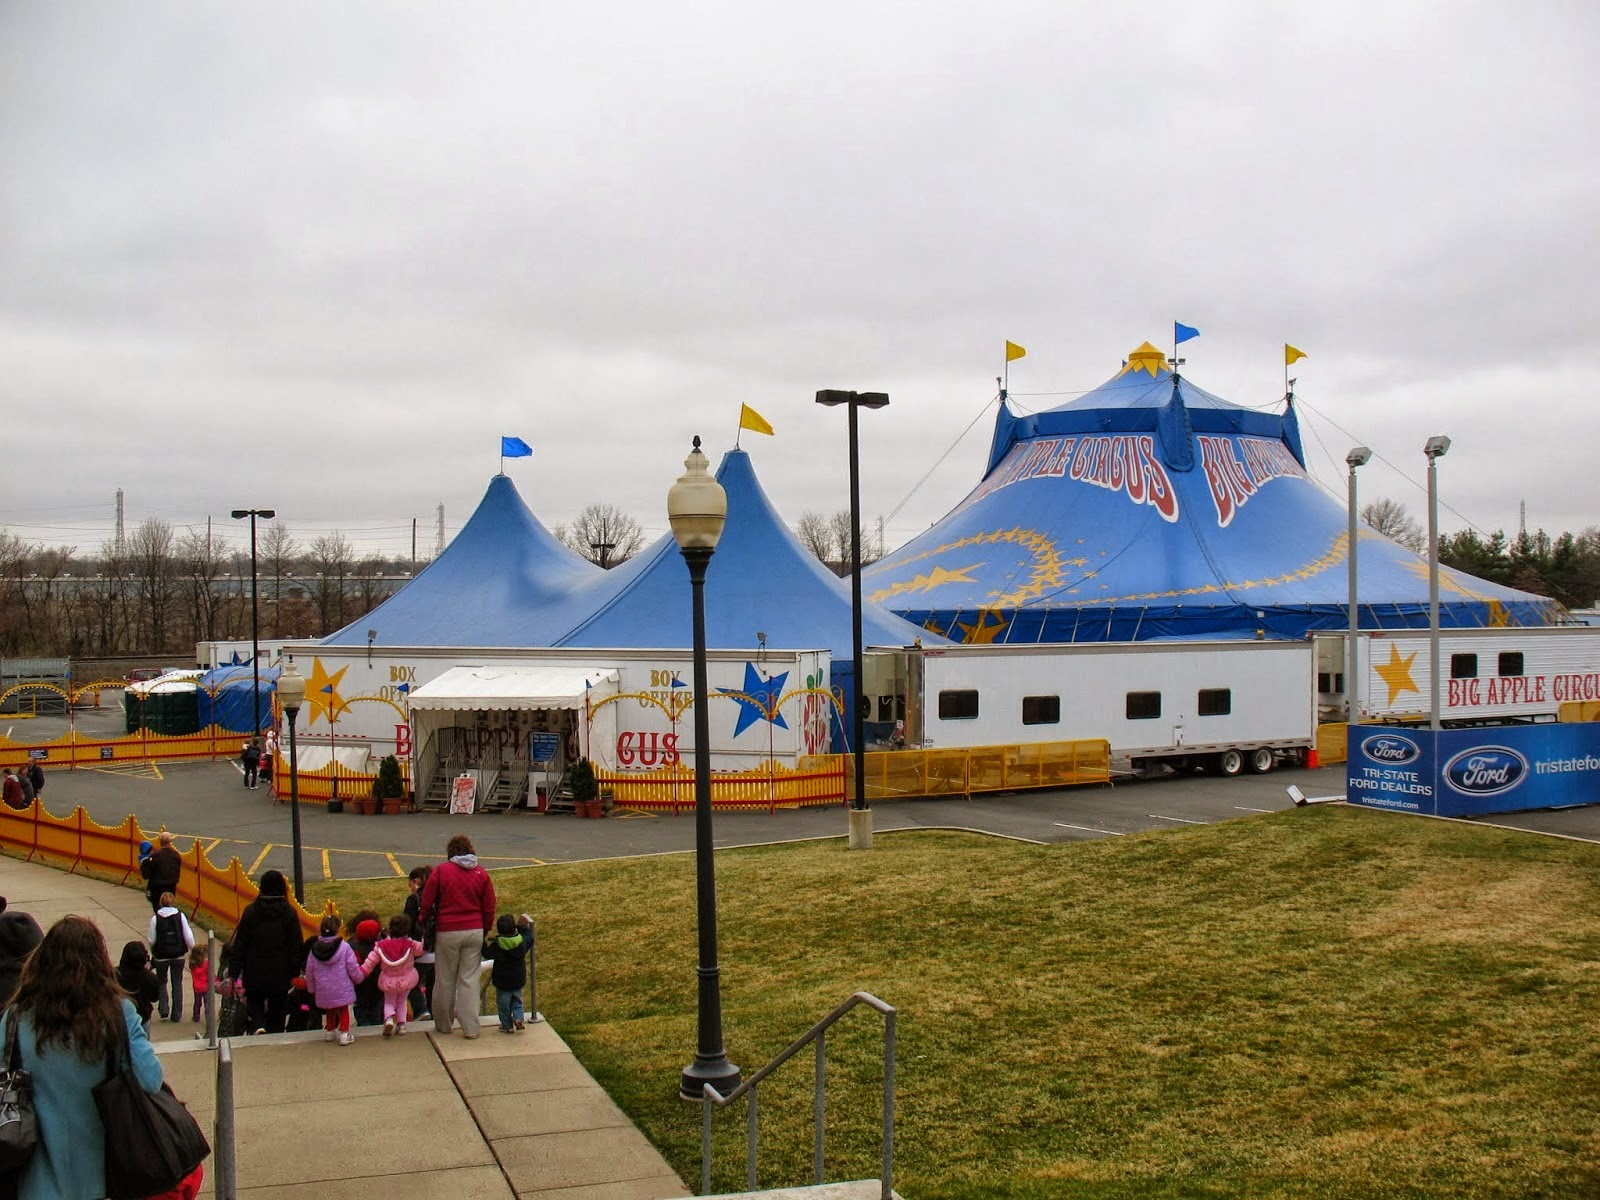 The Big Apple Circus General Show Review & The Jersey Momma: The Big Apple Circus: General Show Review